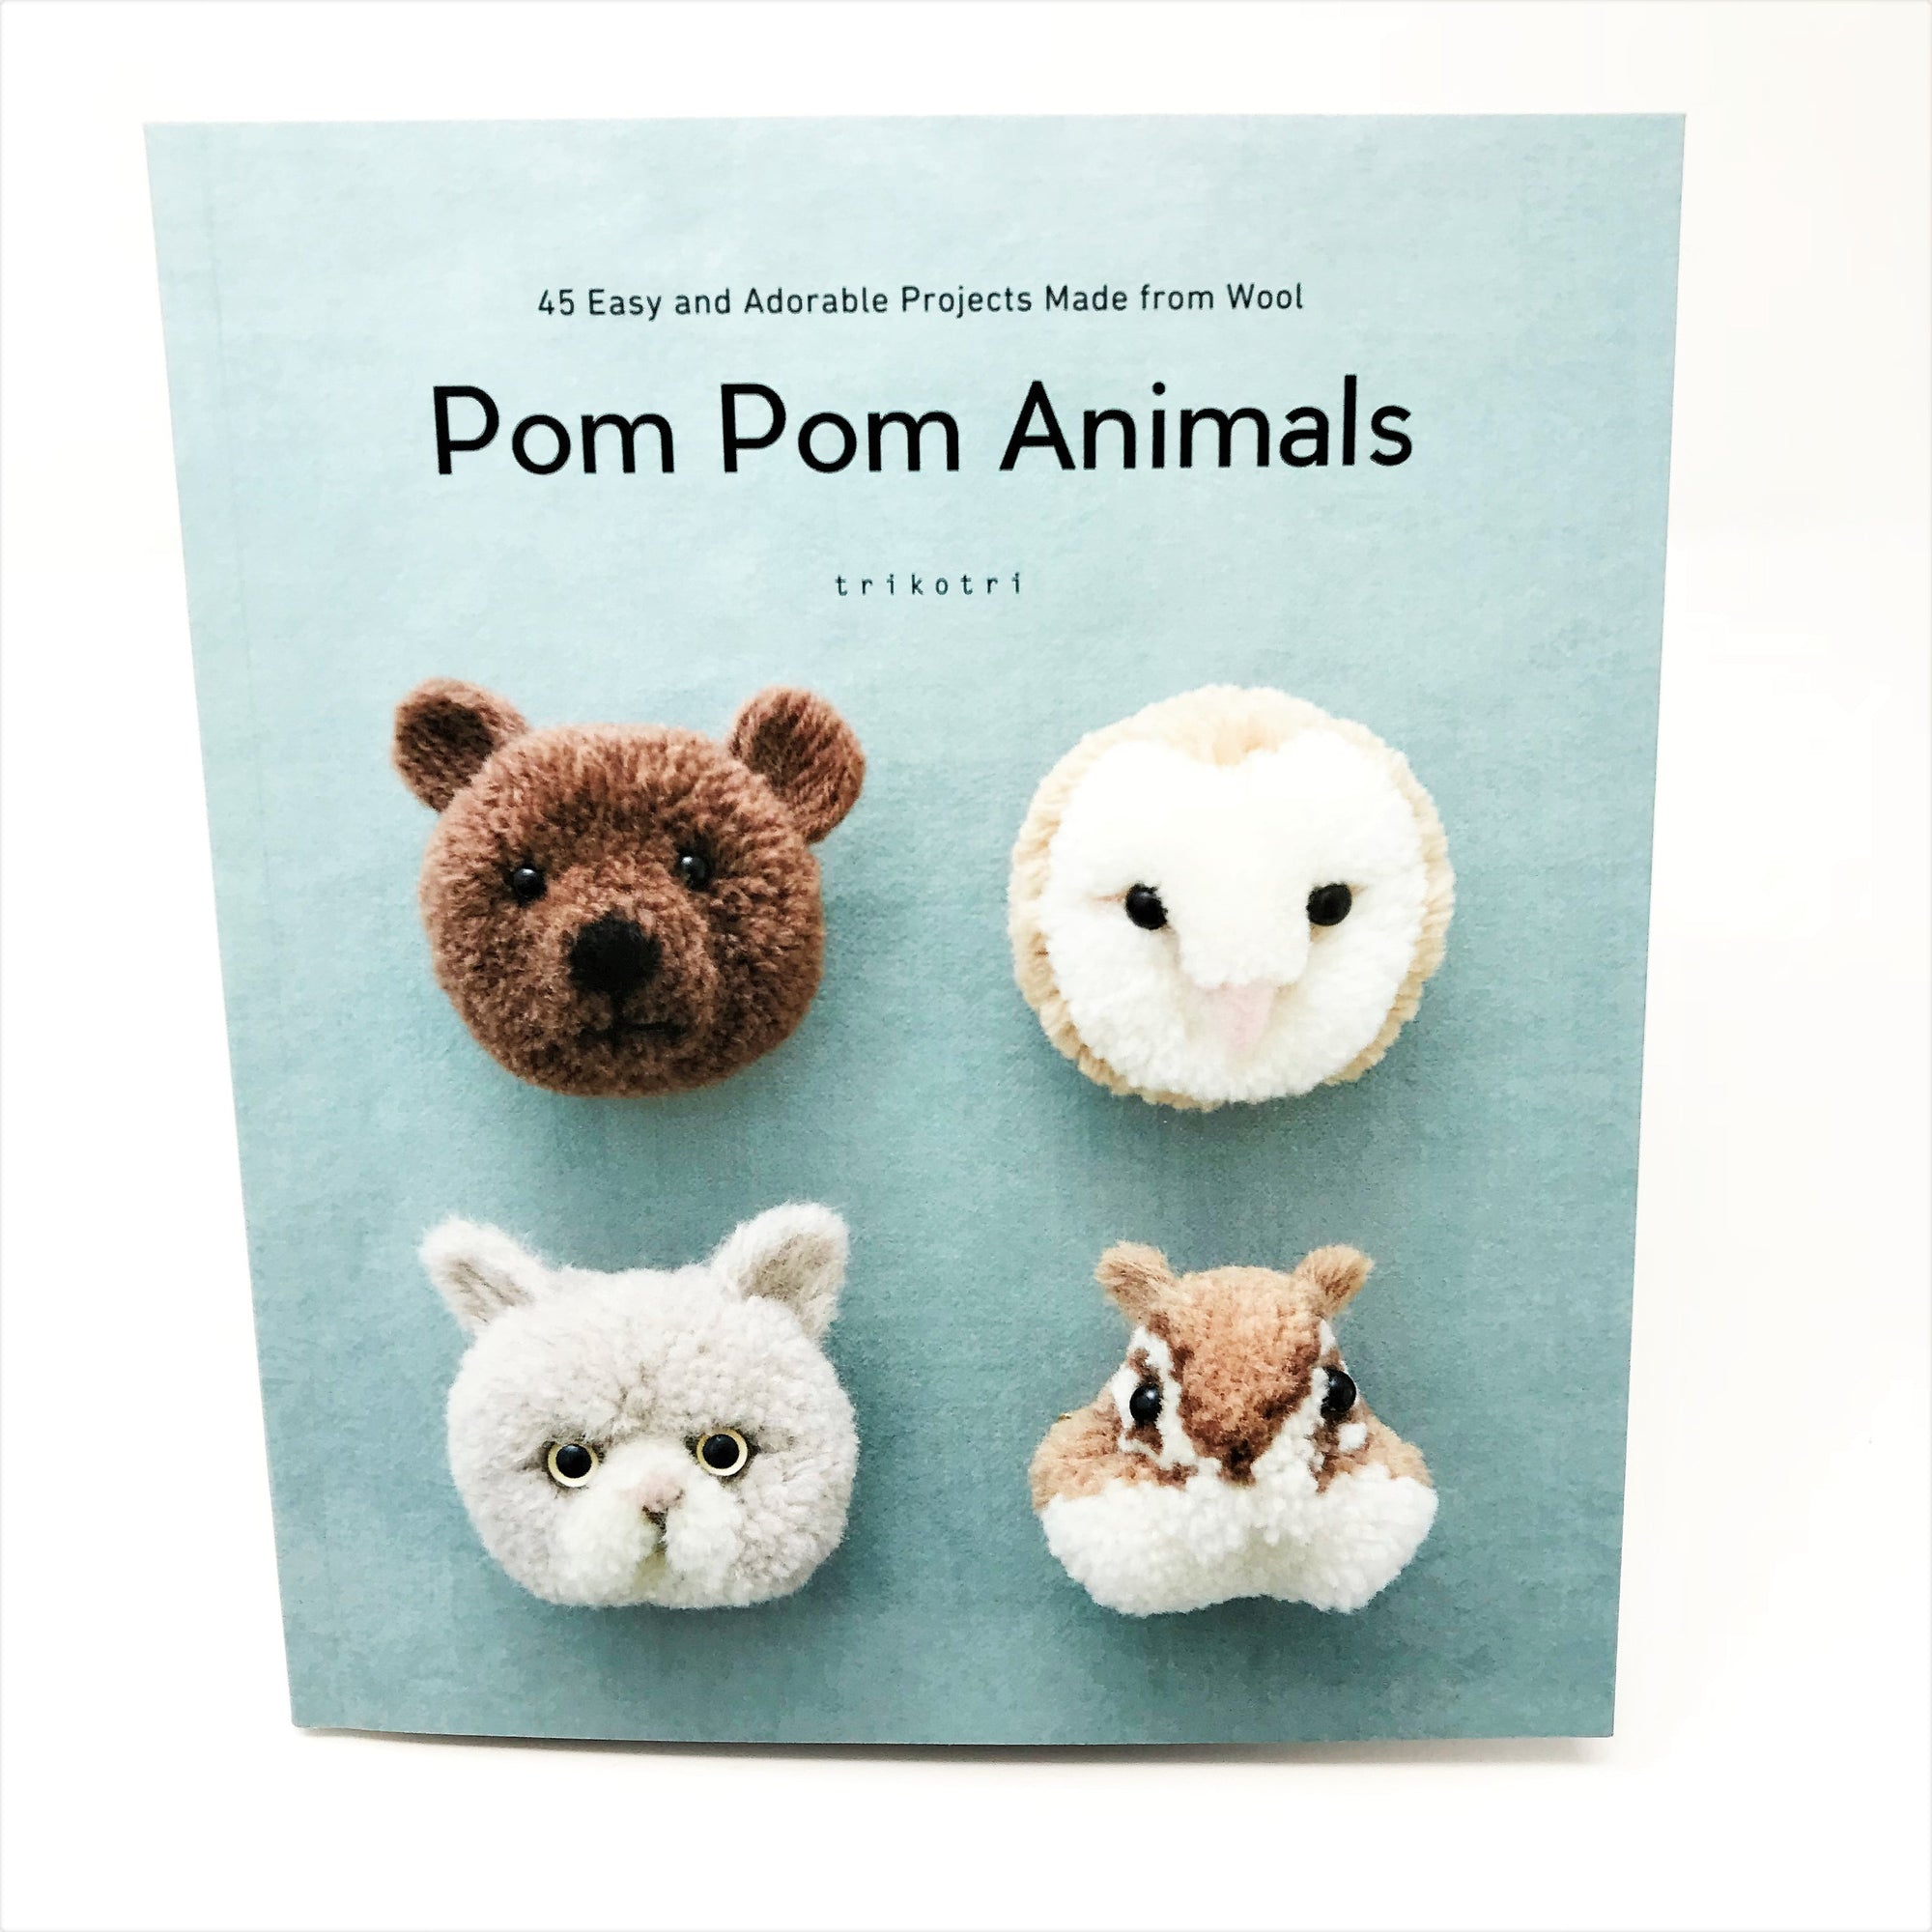 Trikotri Pom Pom Animals Craft Book- English Version